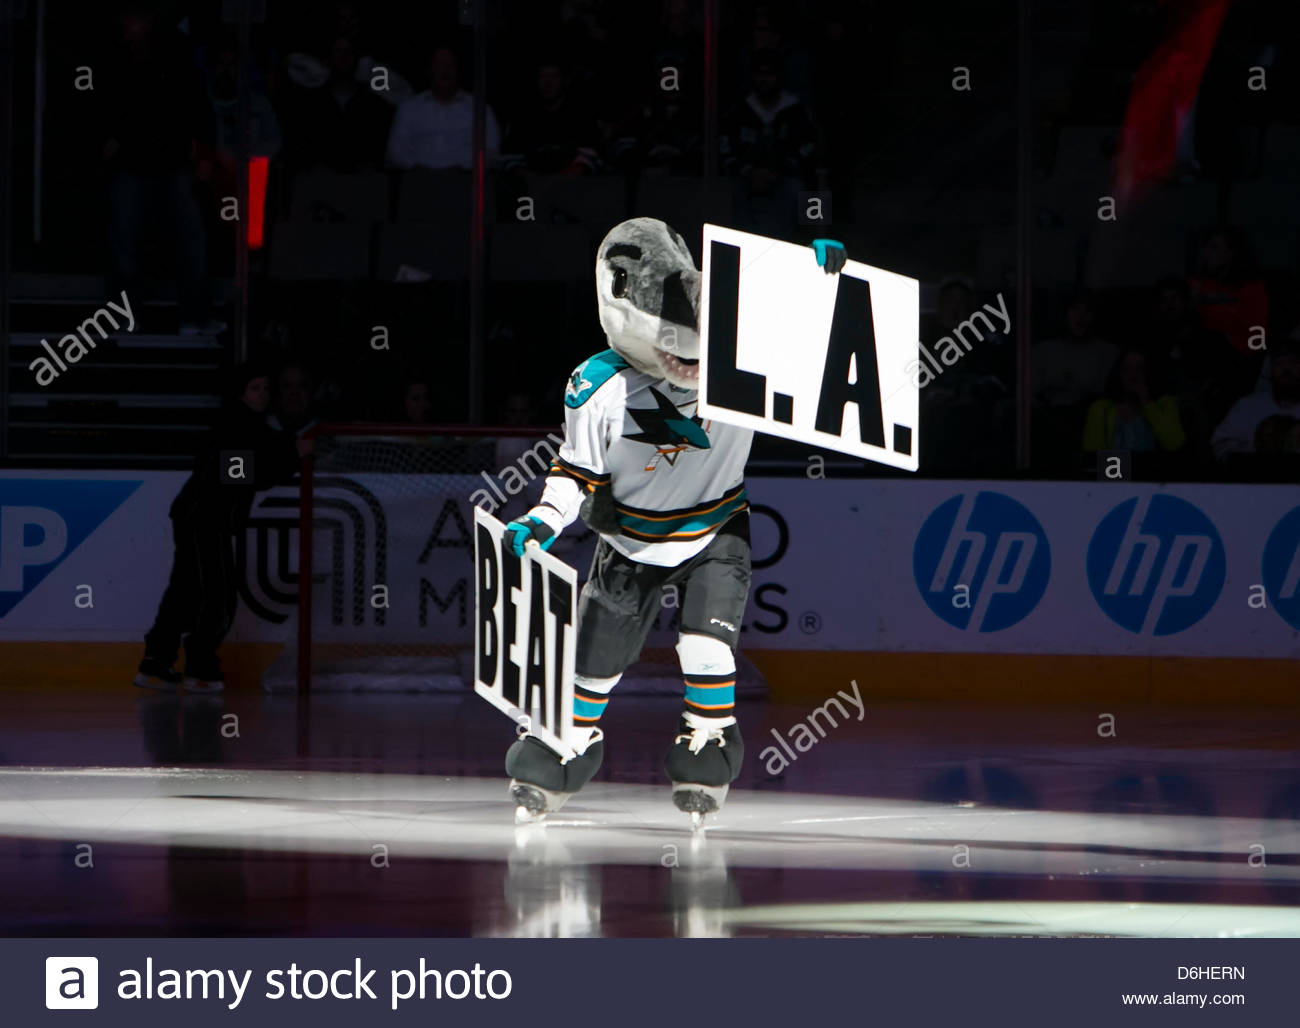 April 16 2013 Sharks Mascot SJ Sharkie Holds Up The Beat LA Posters Prior To NHL Hockey Game Between Los Angeles Kings And San Jose